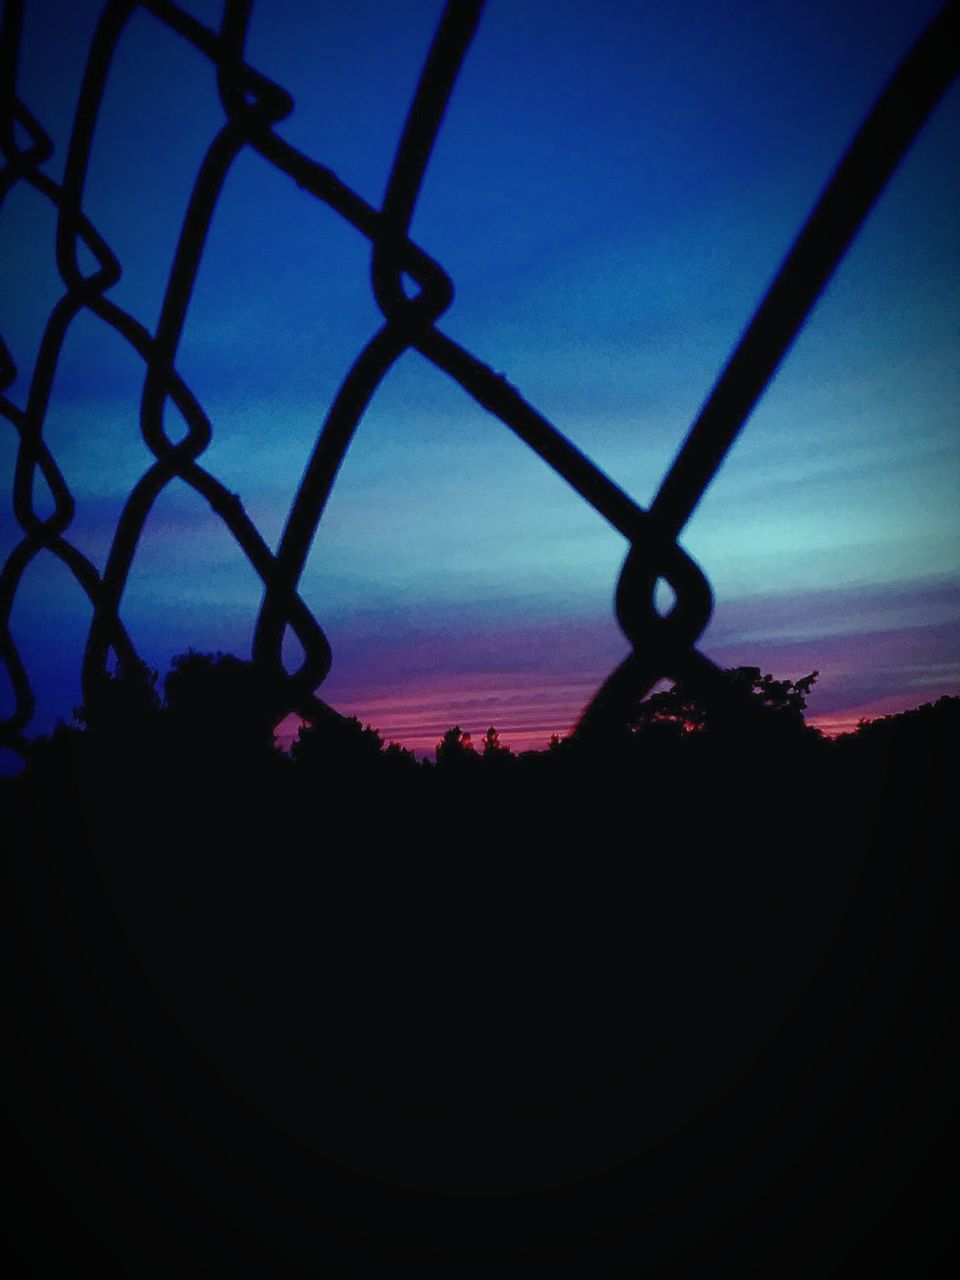 SILHOUETTE OF CHAINLINK FENCE AGAINST SKY DURING SUNSET